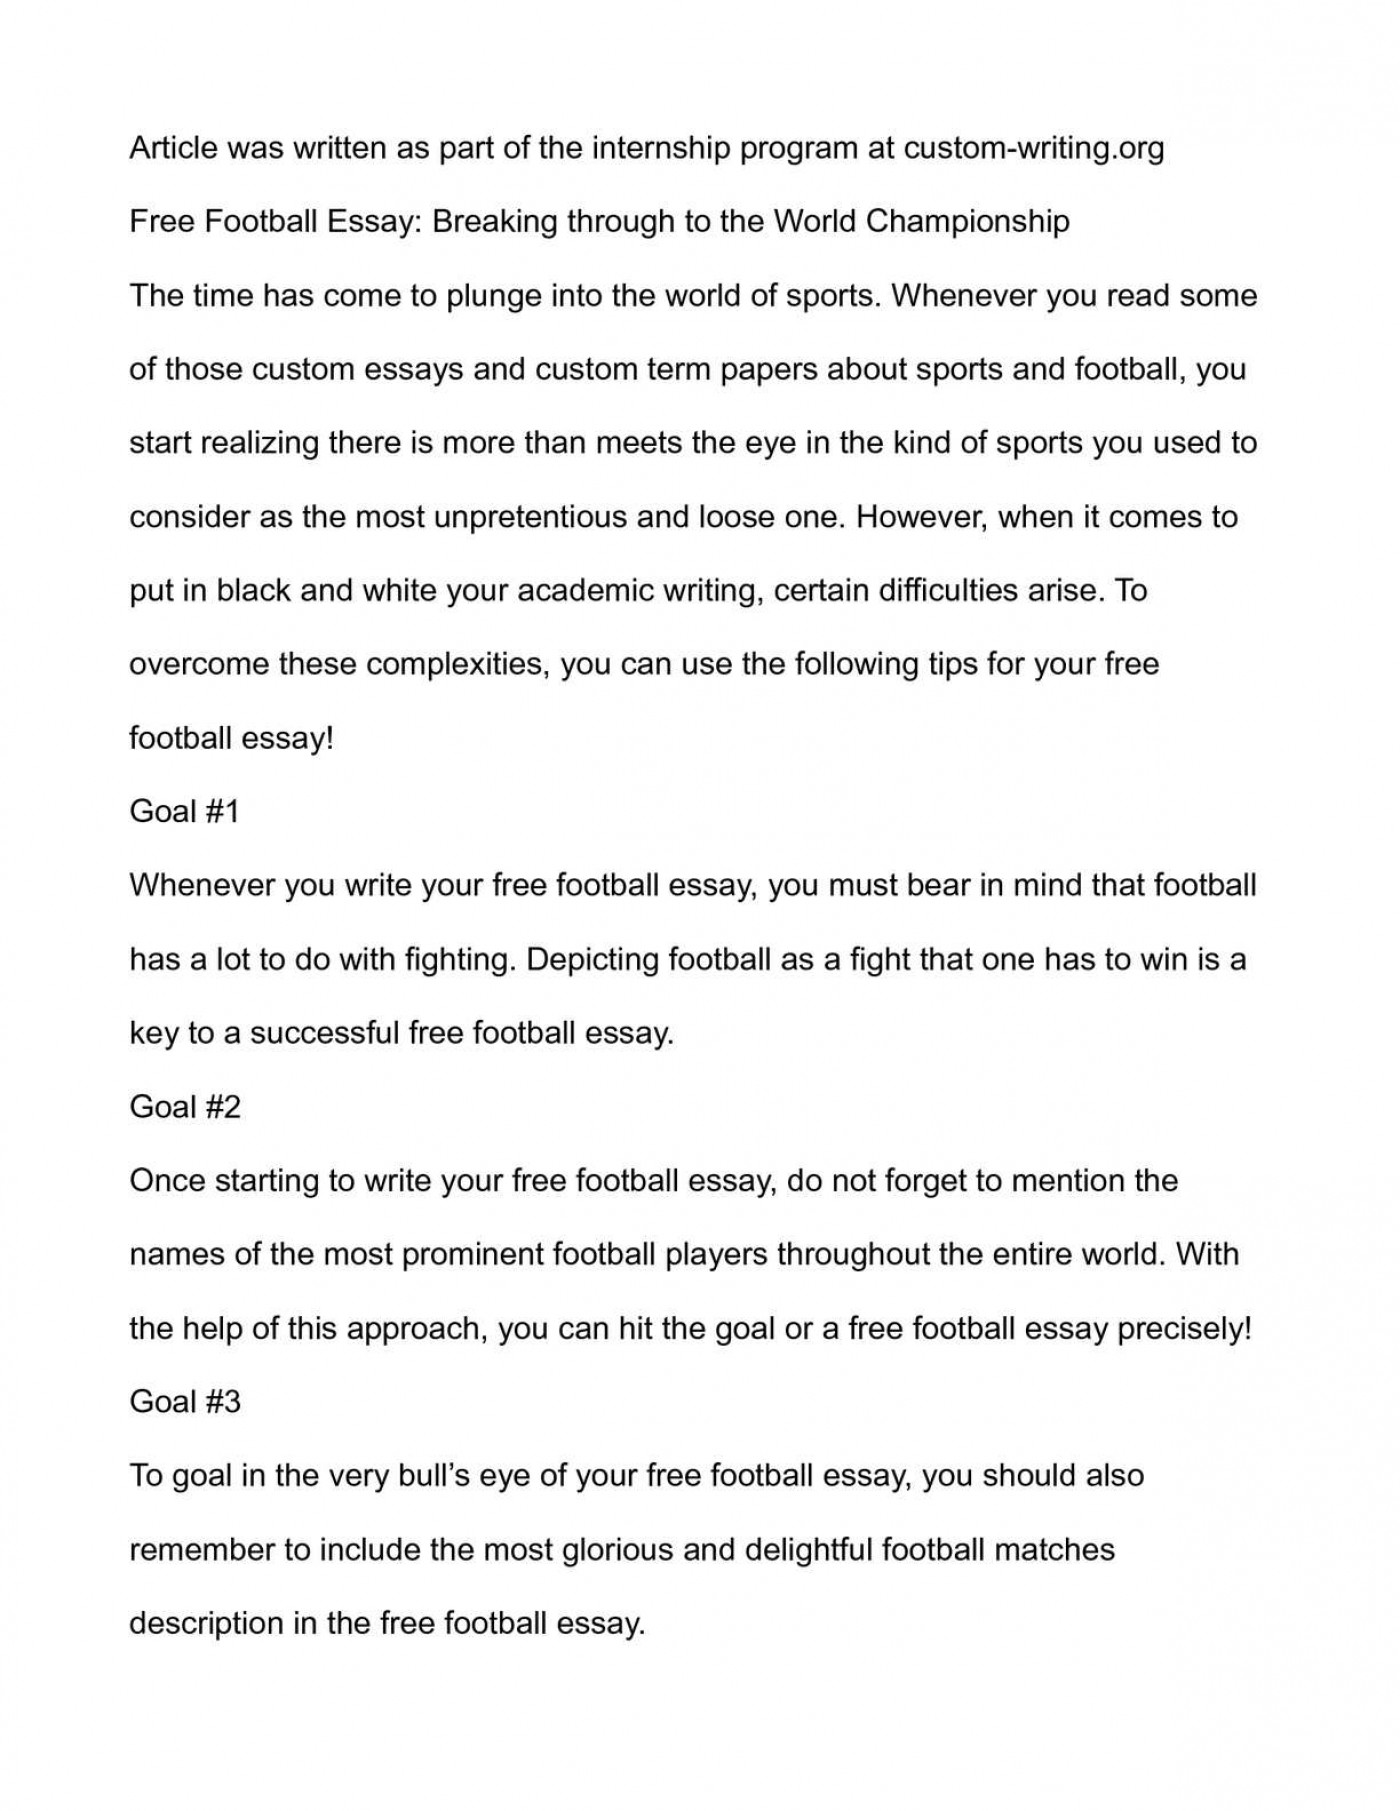 002 Football Essay P1 Exceptional My Favorite Game In Marathi Related Discursive Topics Hindi Wikipedia 1400